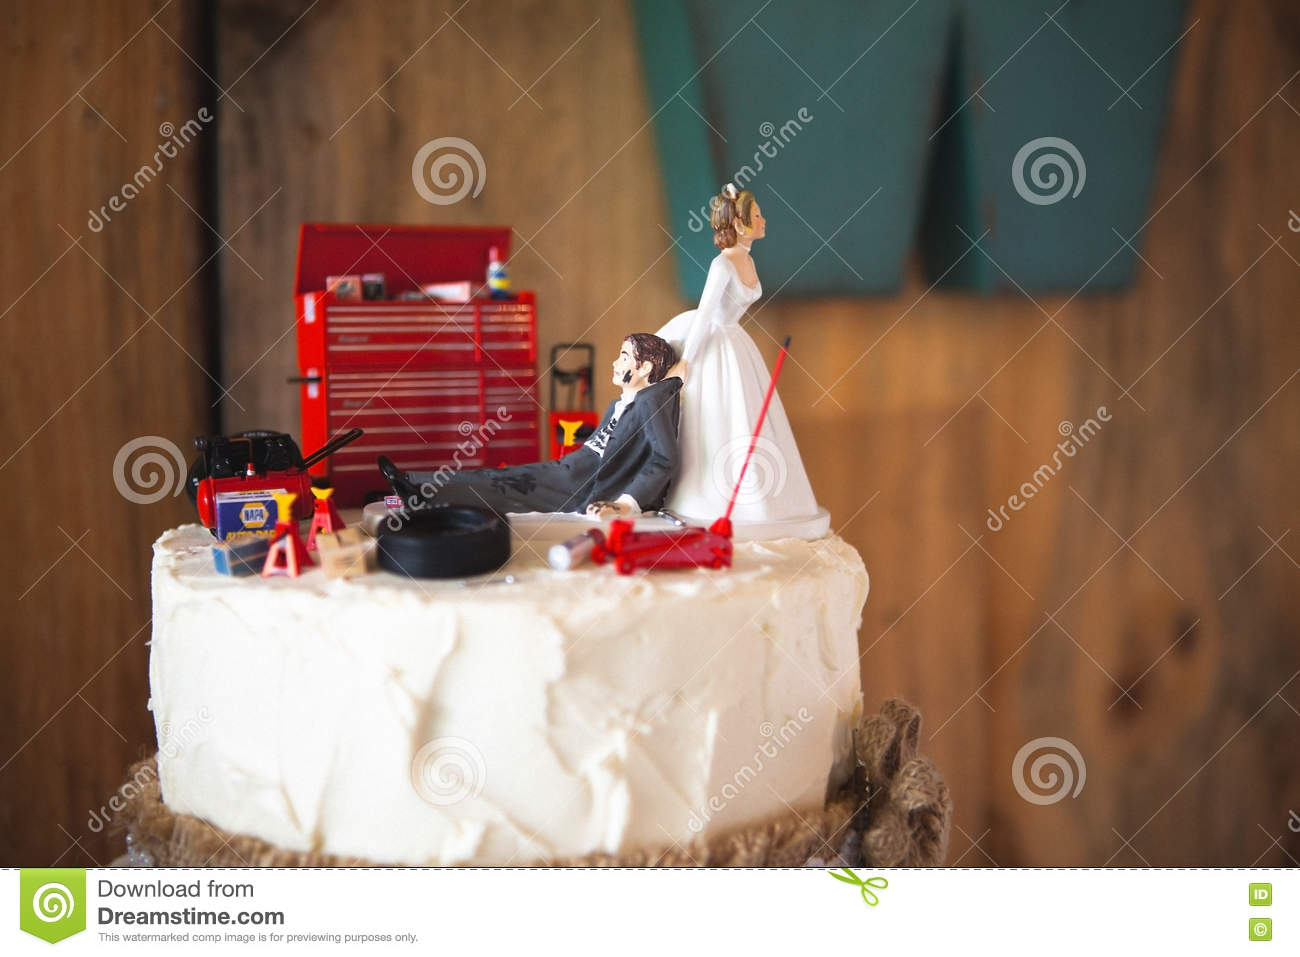 Admirable Redneck Wedding Cake Topper With Mechanic Groom Editorial Stock Funny Birthday Cards Online Inifofree Goldxyz